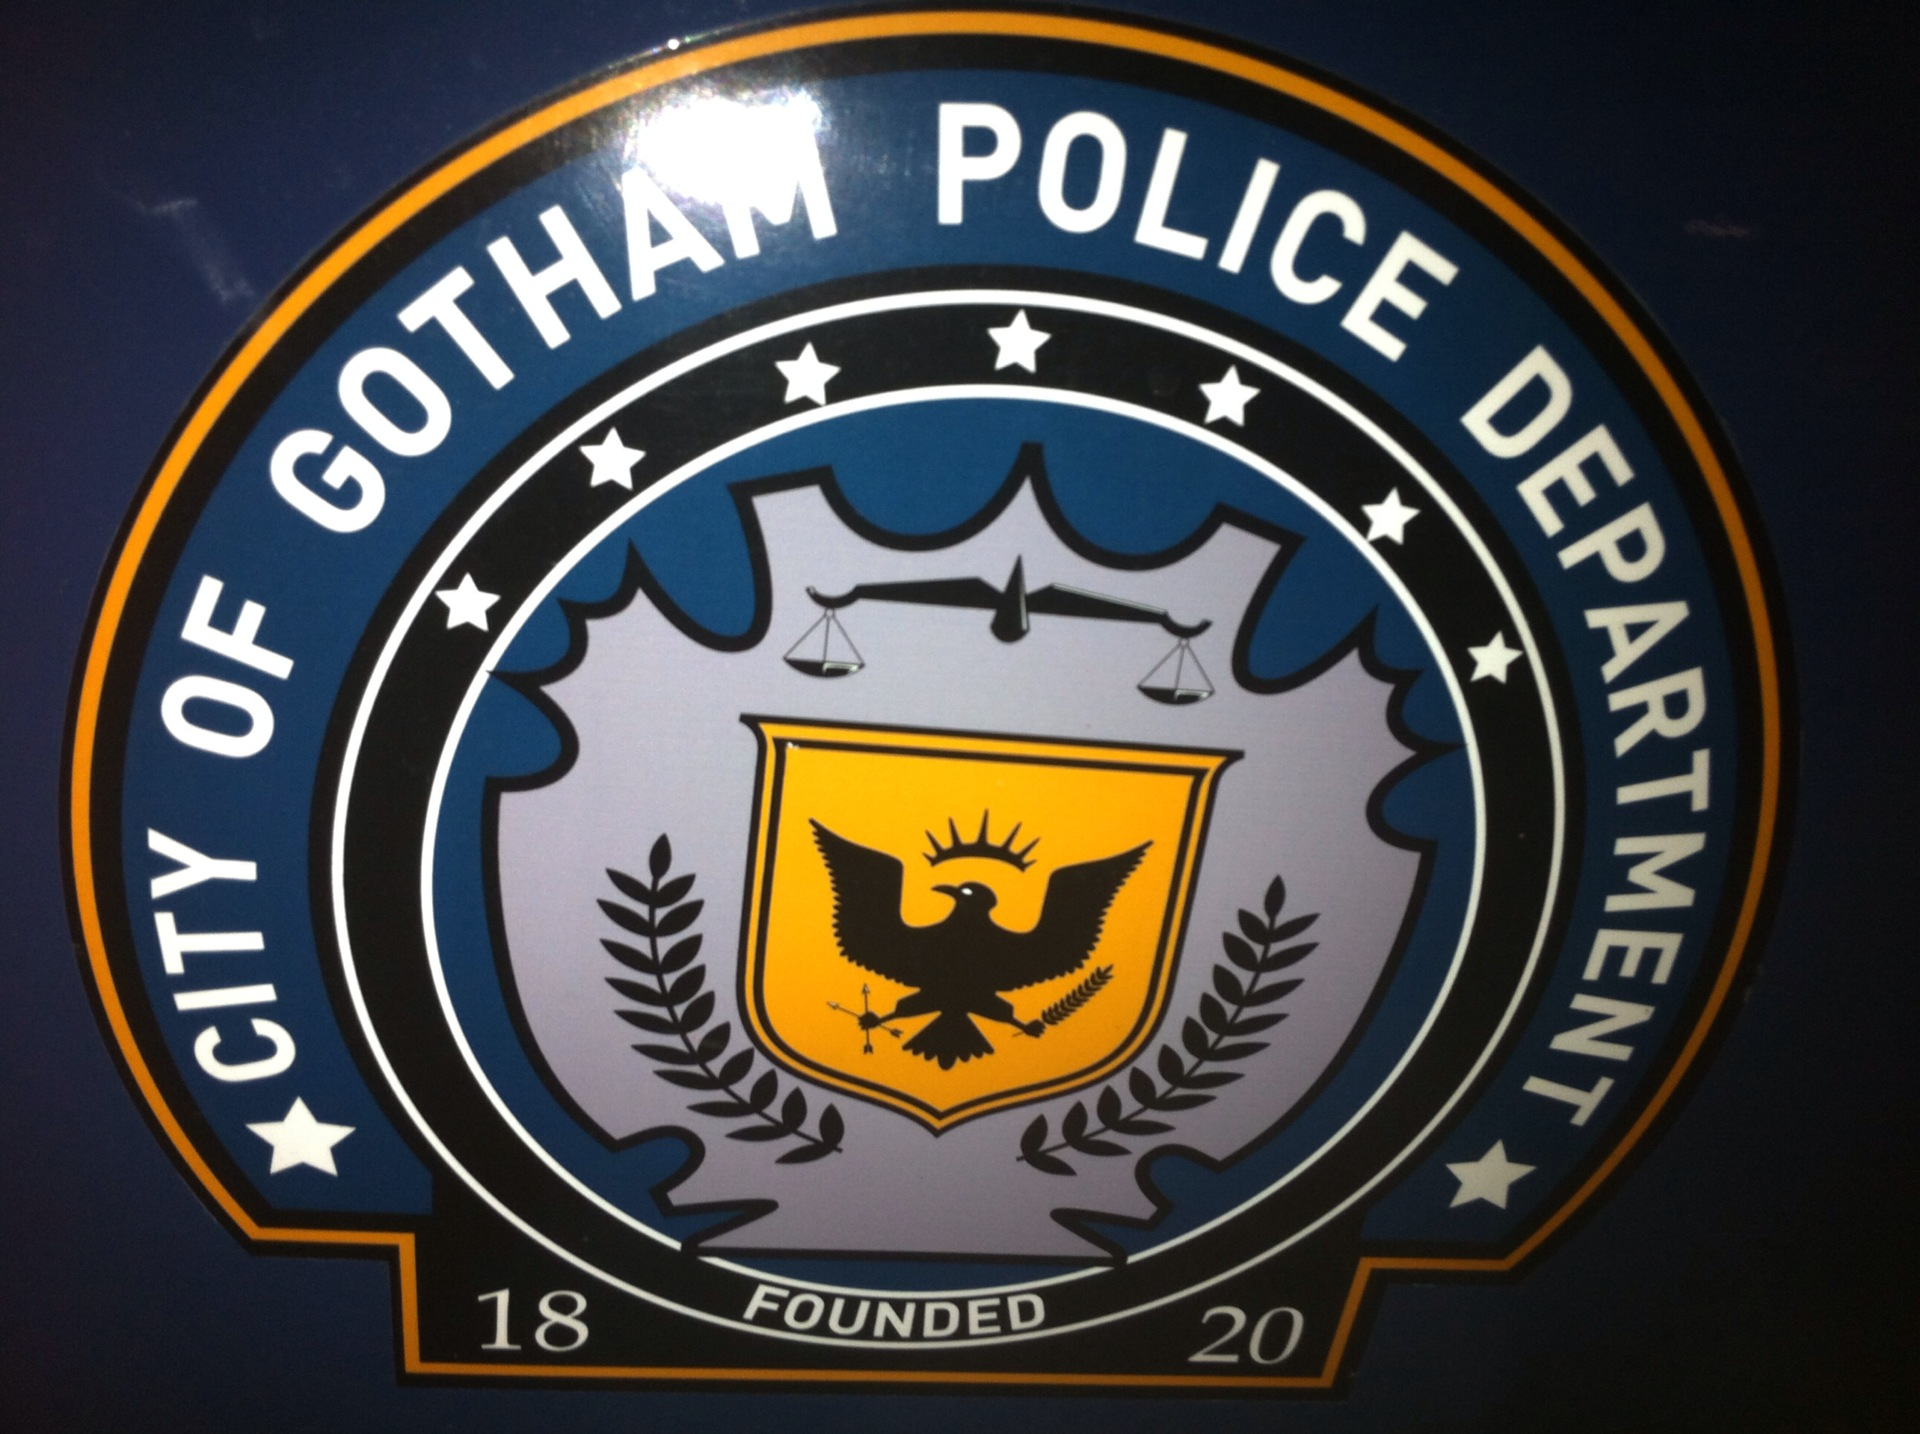 Picture link game. - Page 6 Gotham-City-Police-Department-The-Dark-Knight-Rises